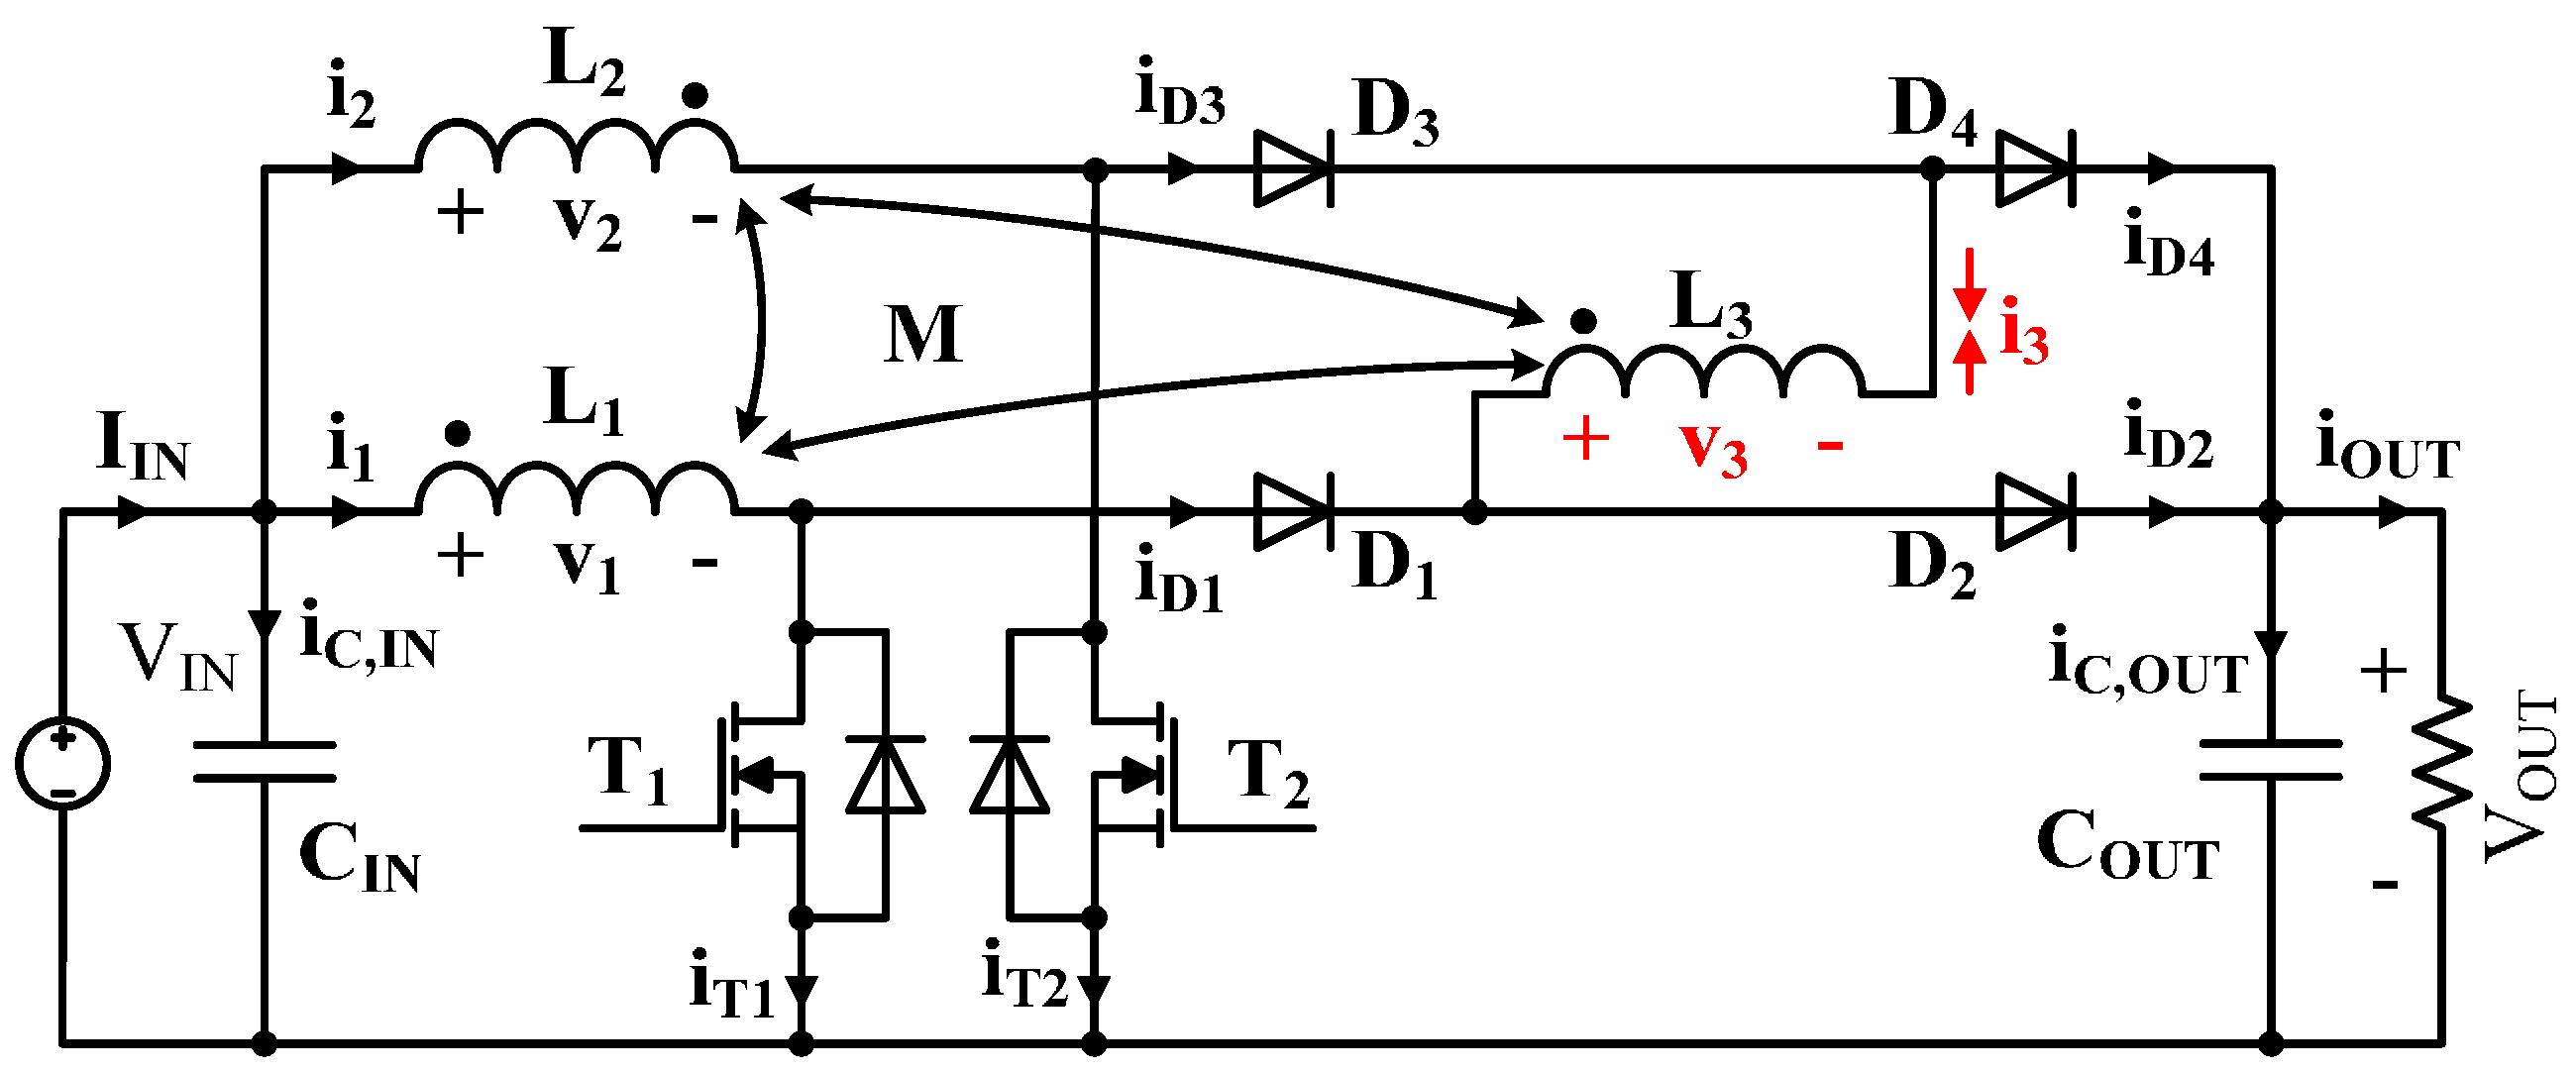 Energies Free Full Text High Gain Boost Interleaved Converters How An Inductor Can Work In A Circuit This Figure Is Helpful Figures No